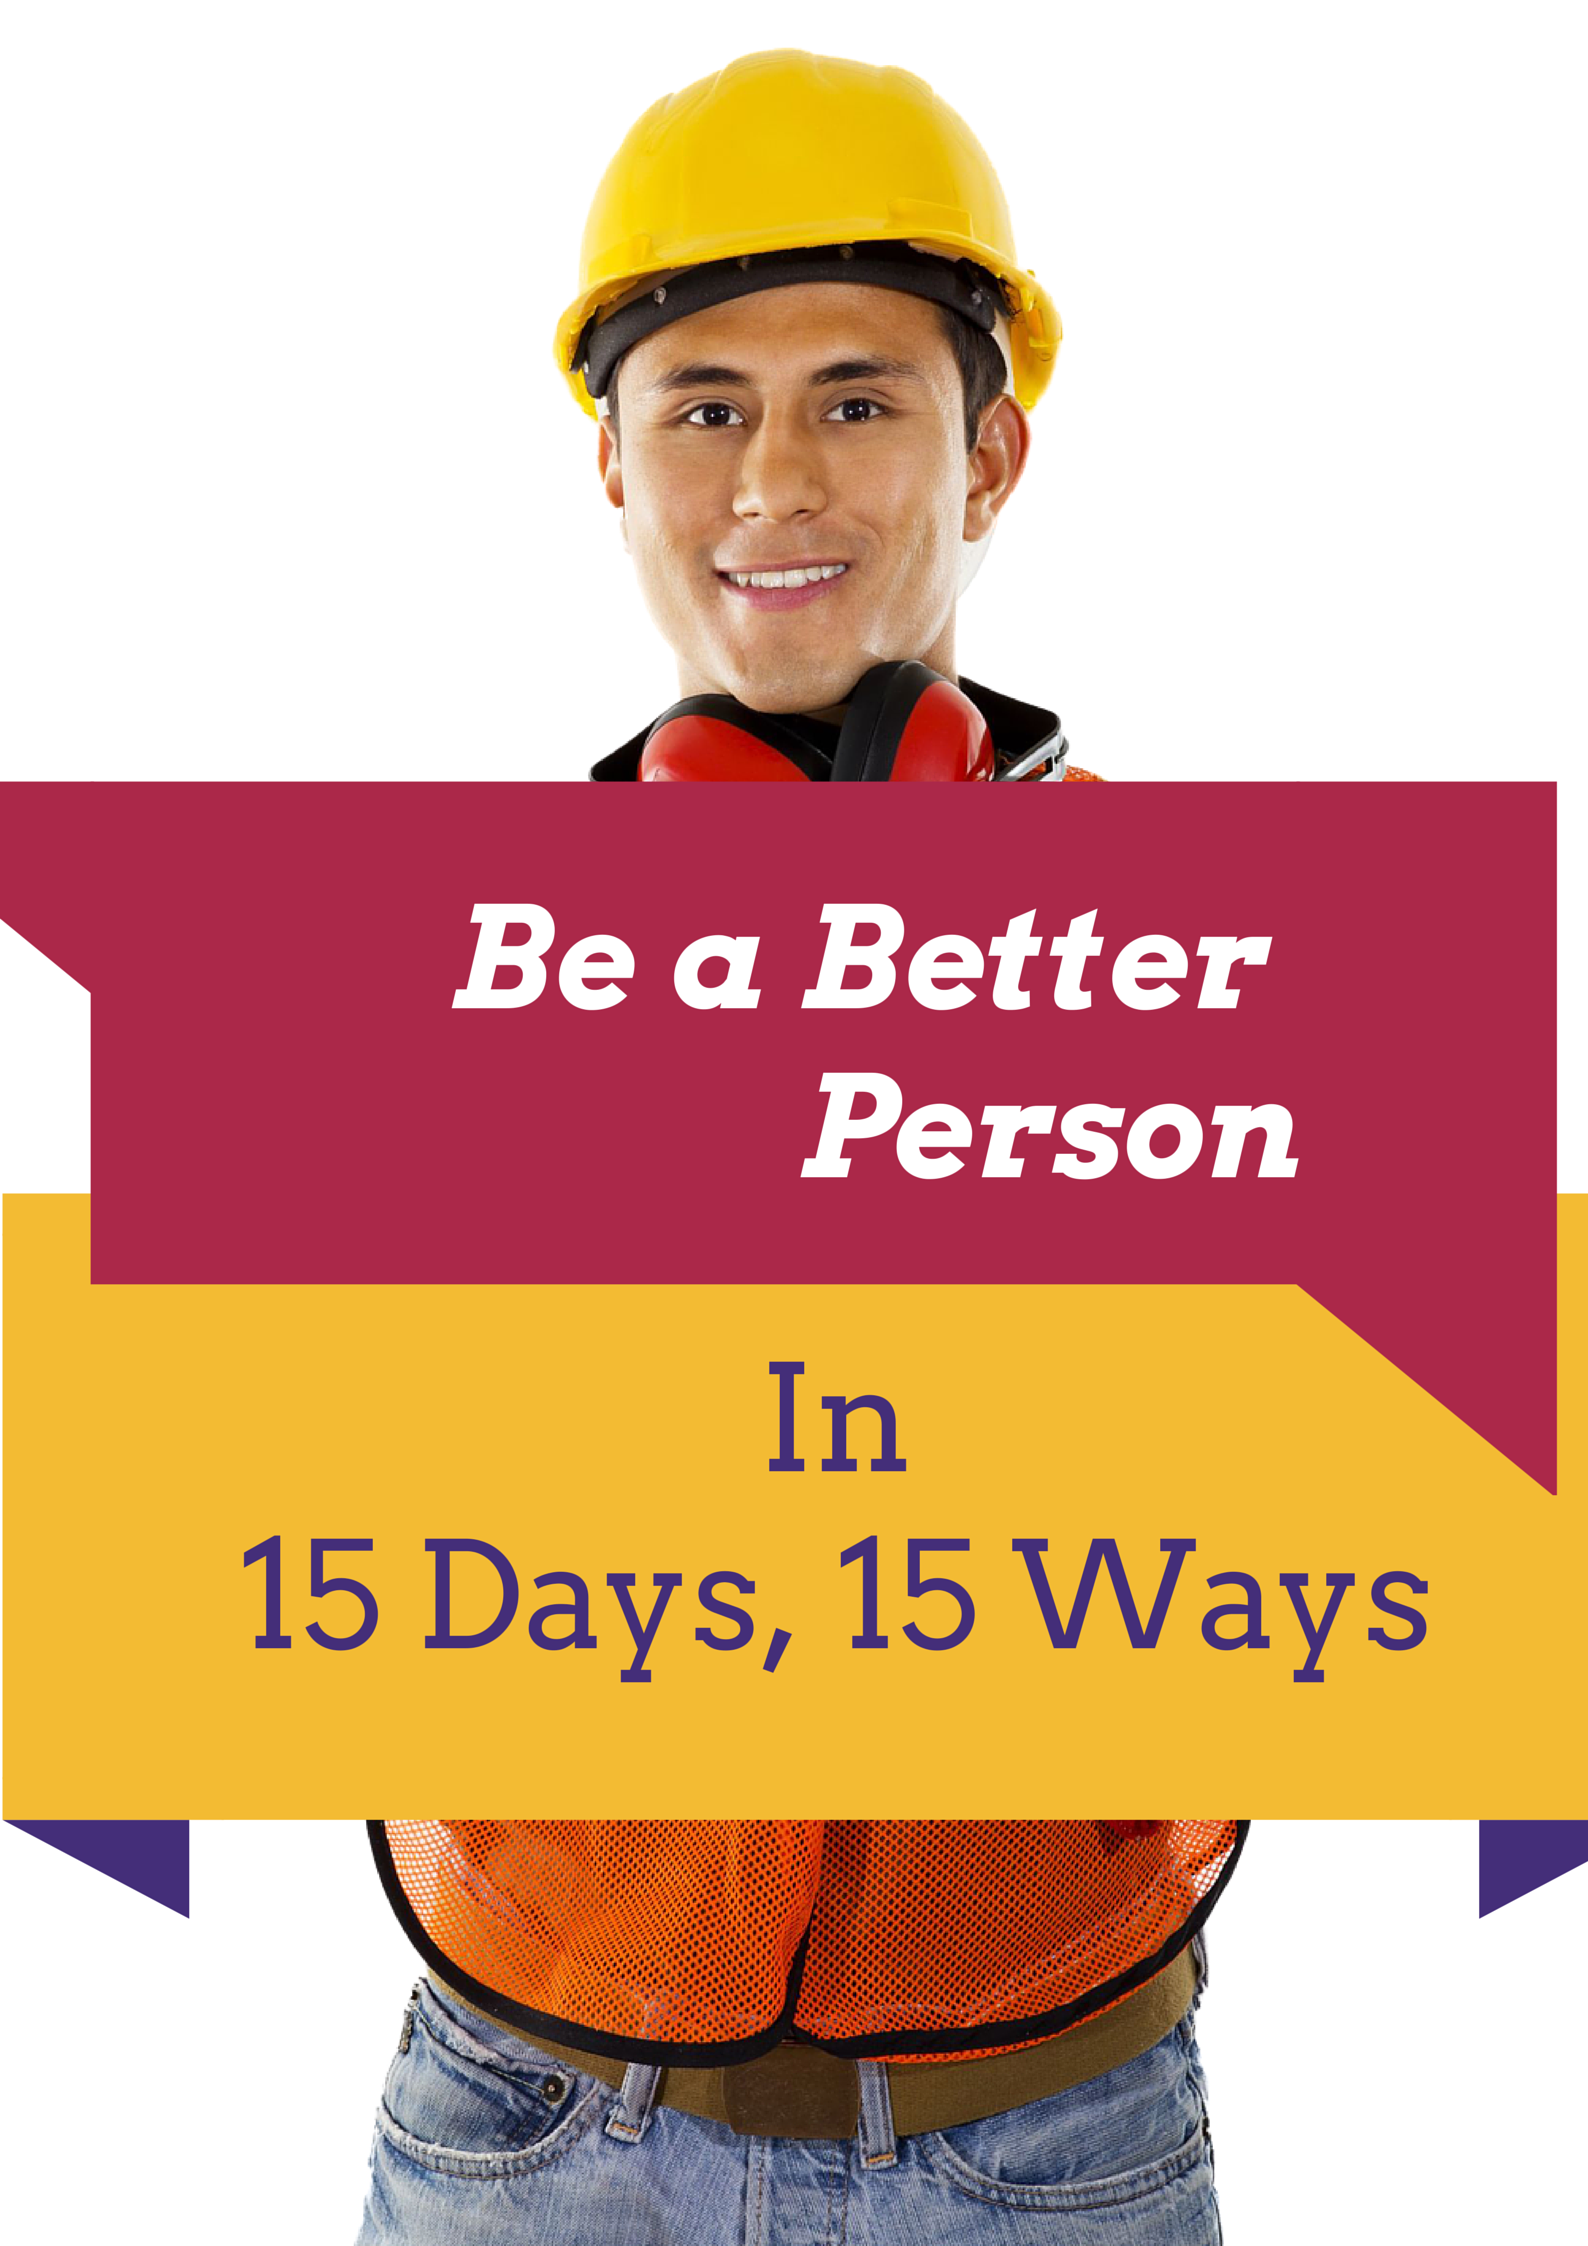 Bet a Better Person in 15 Days and 15 Ways